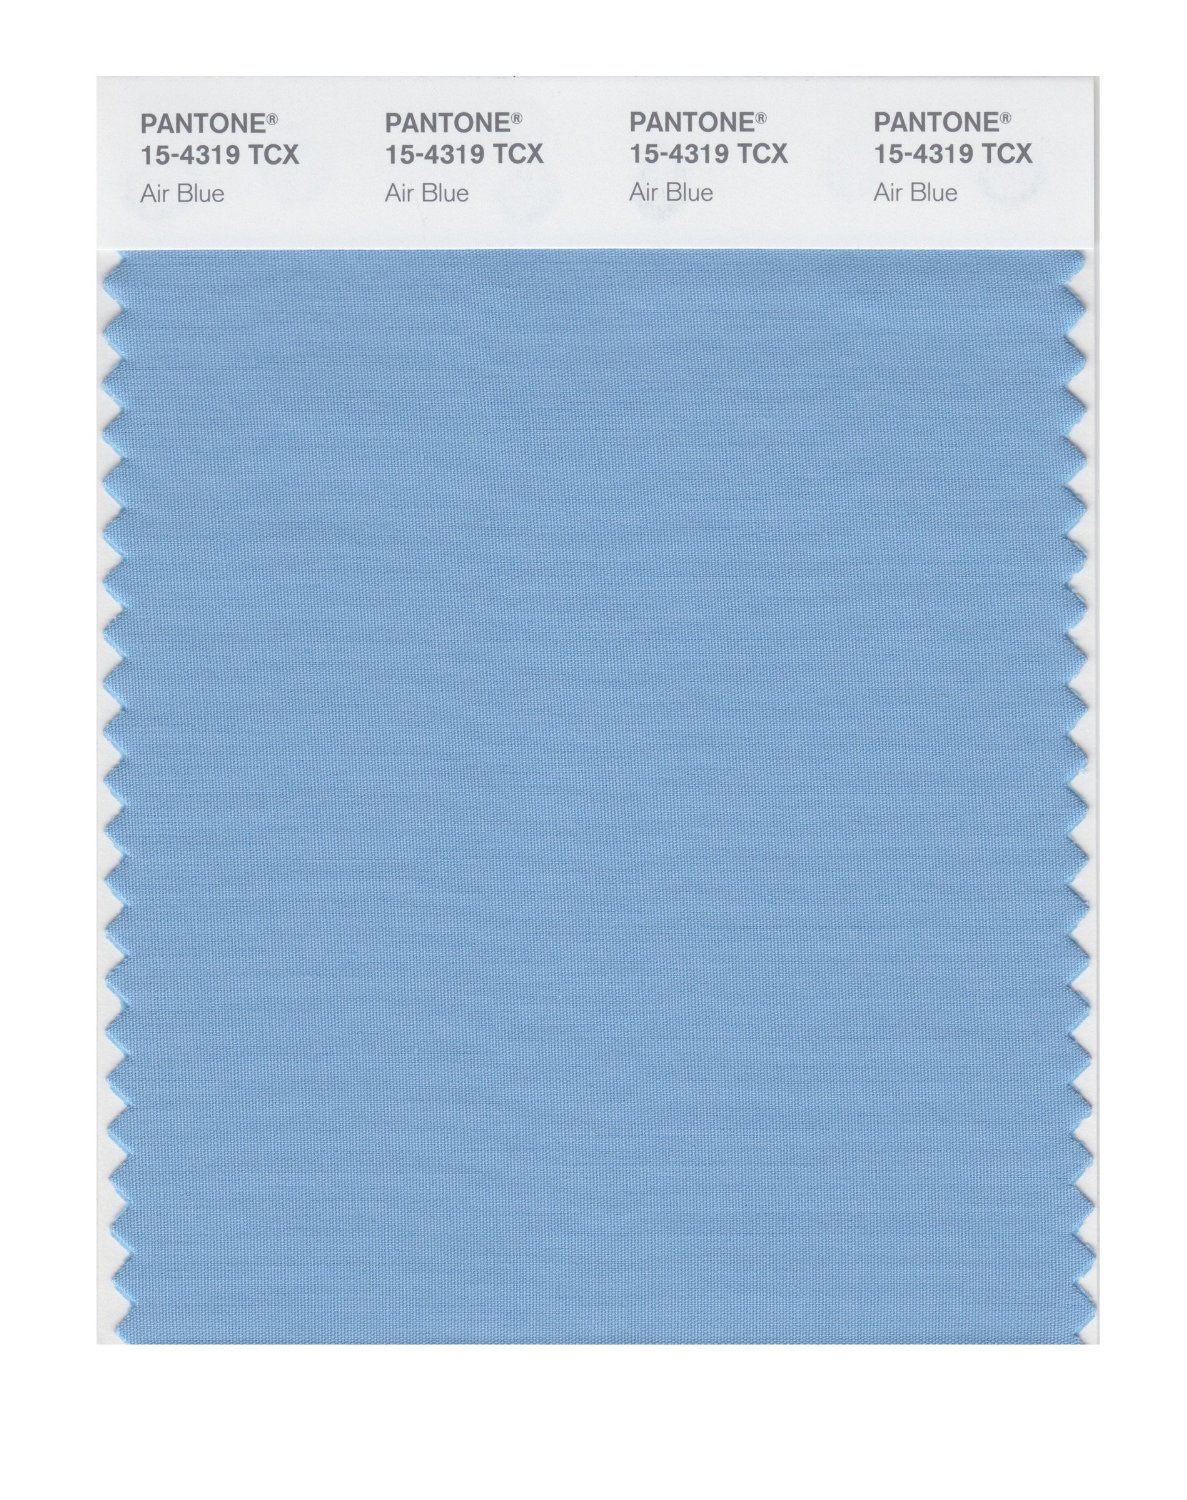 Pantone Smart Swatch 15-4319 Air Blue